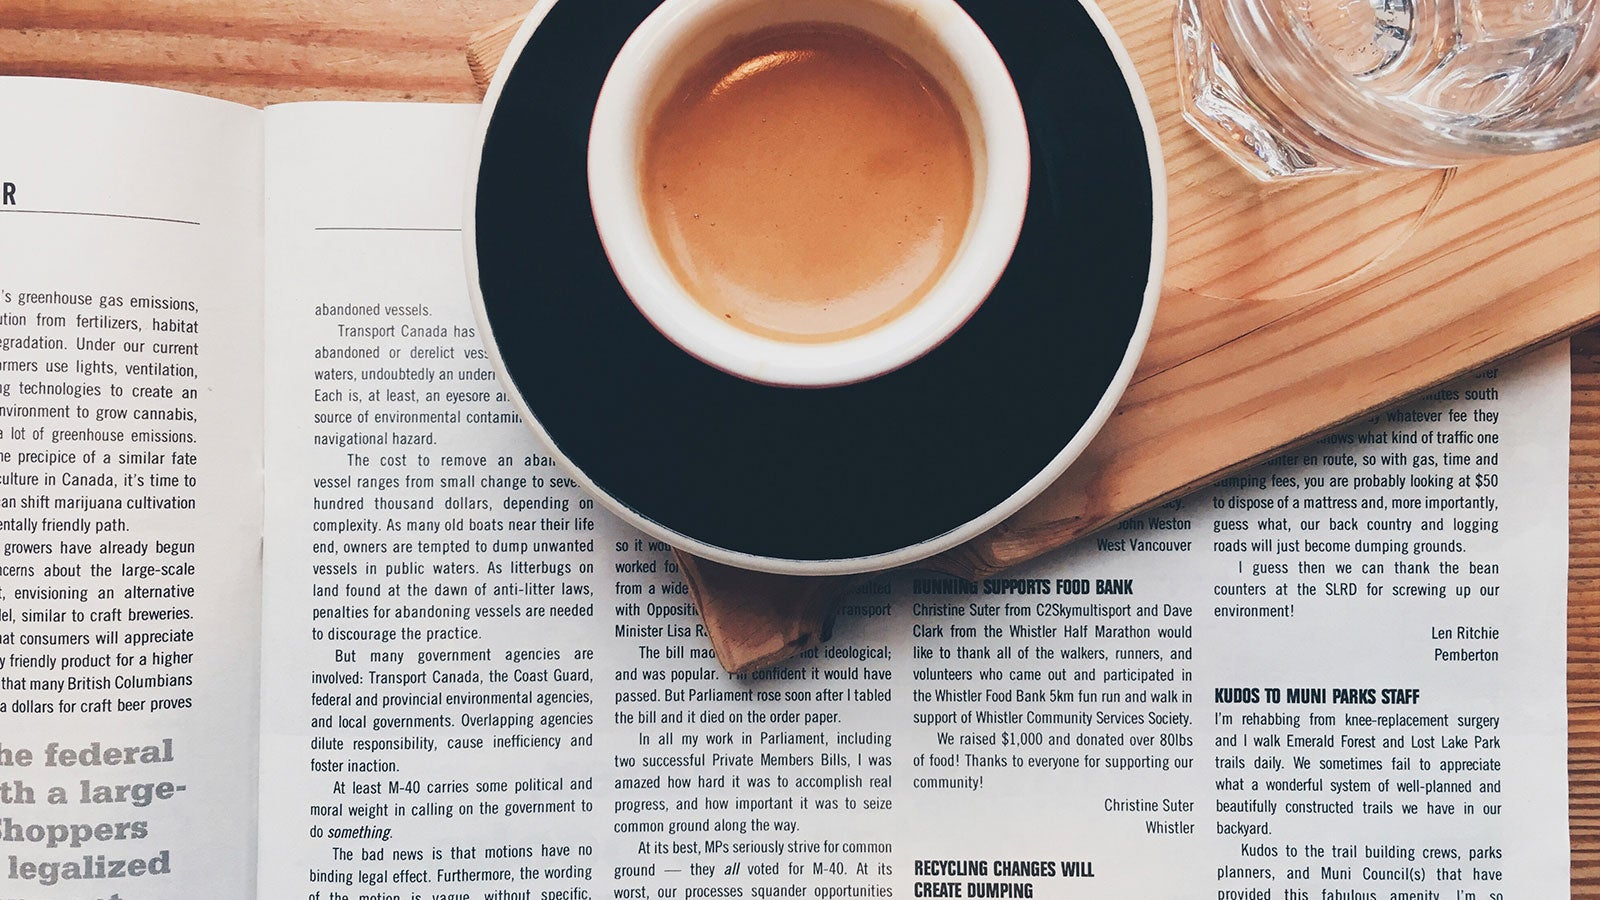 Coffee cup next to an open newspaper